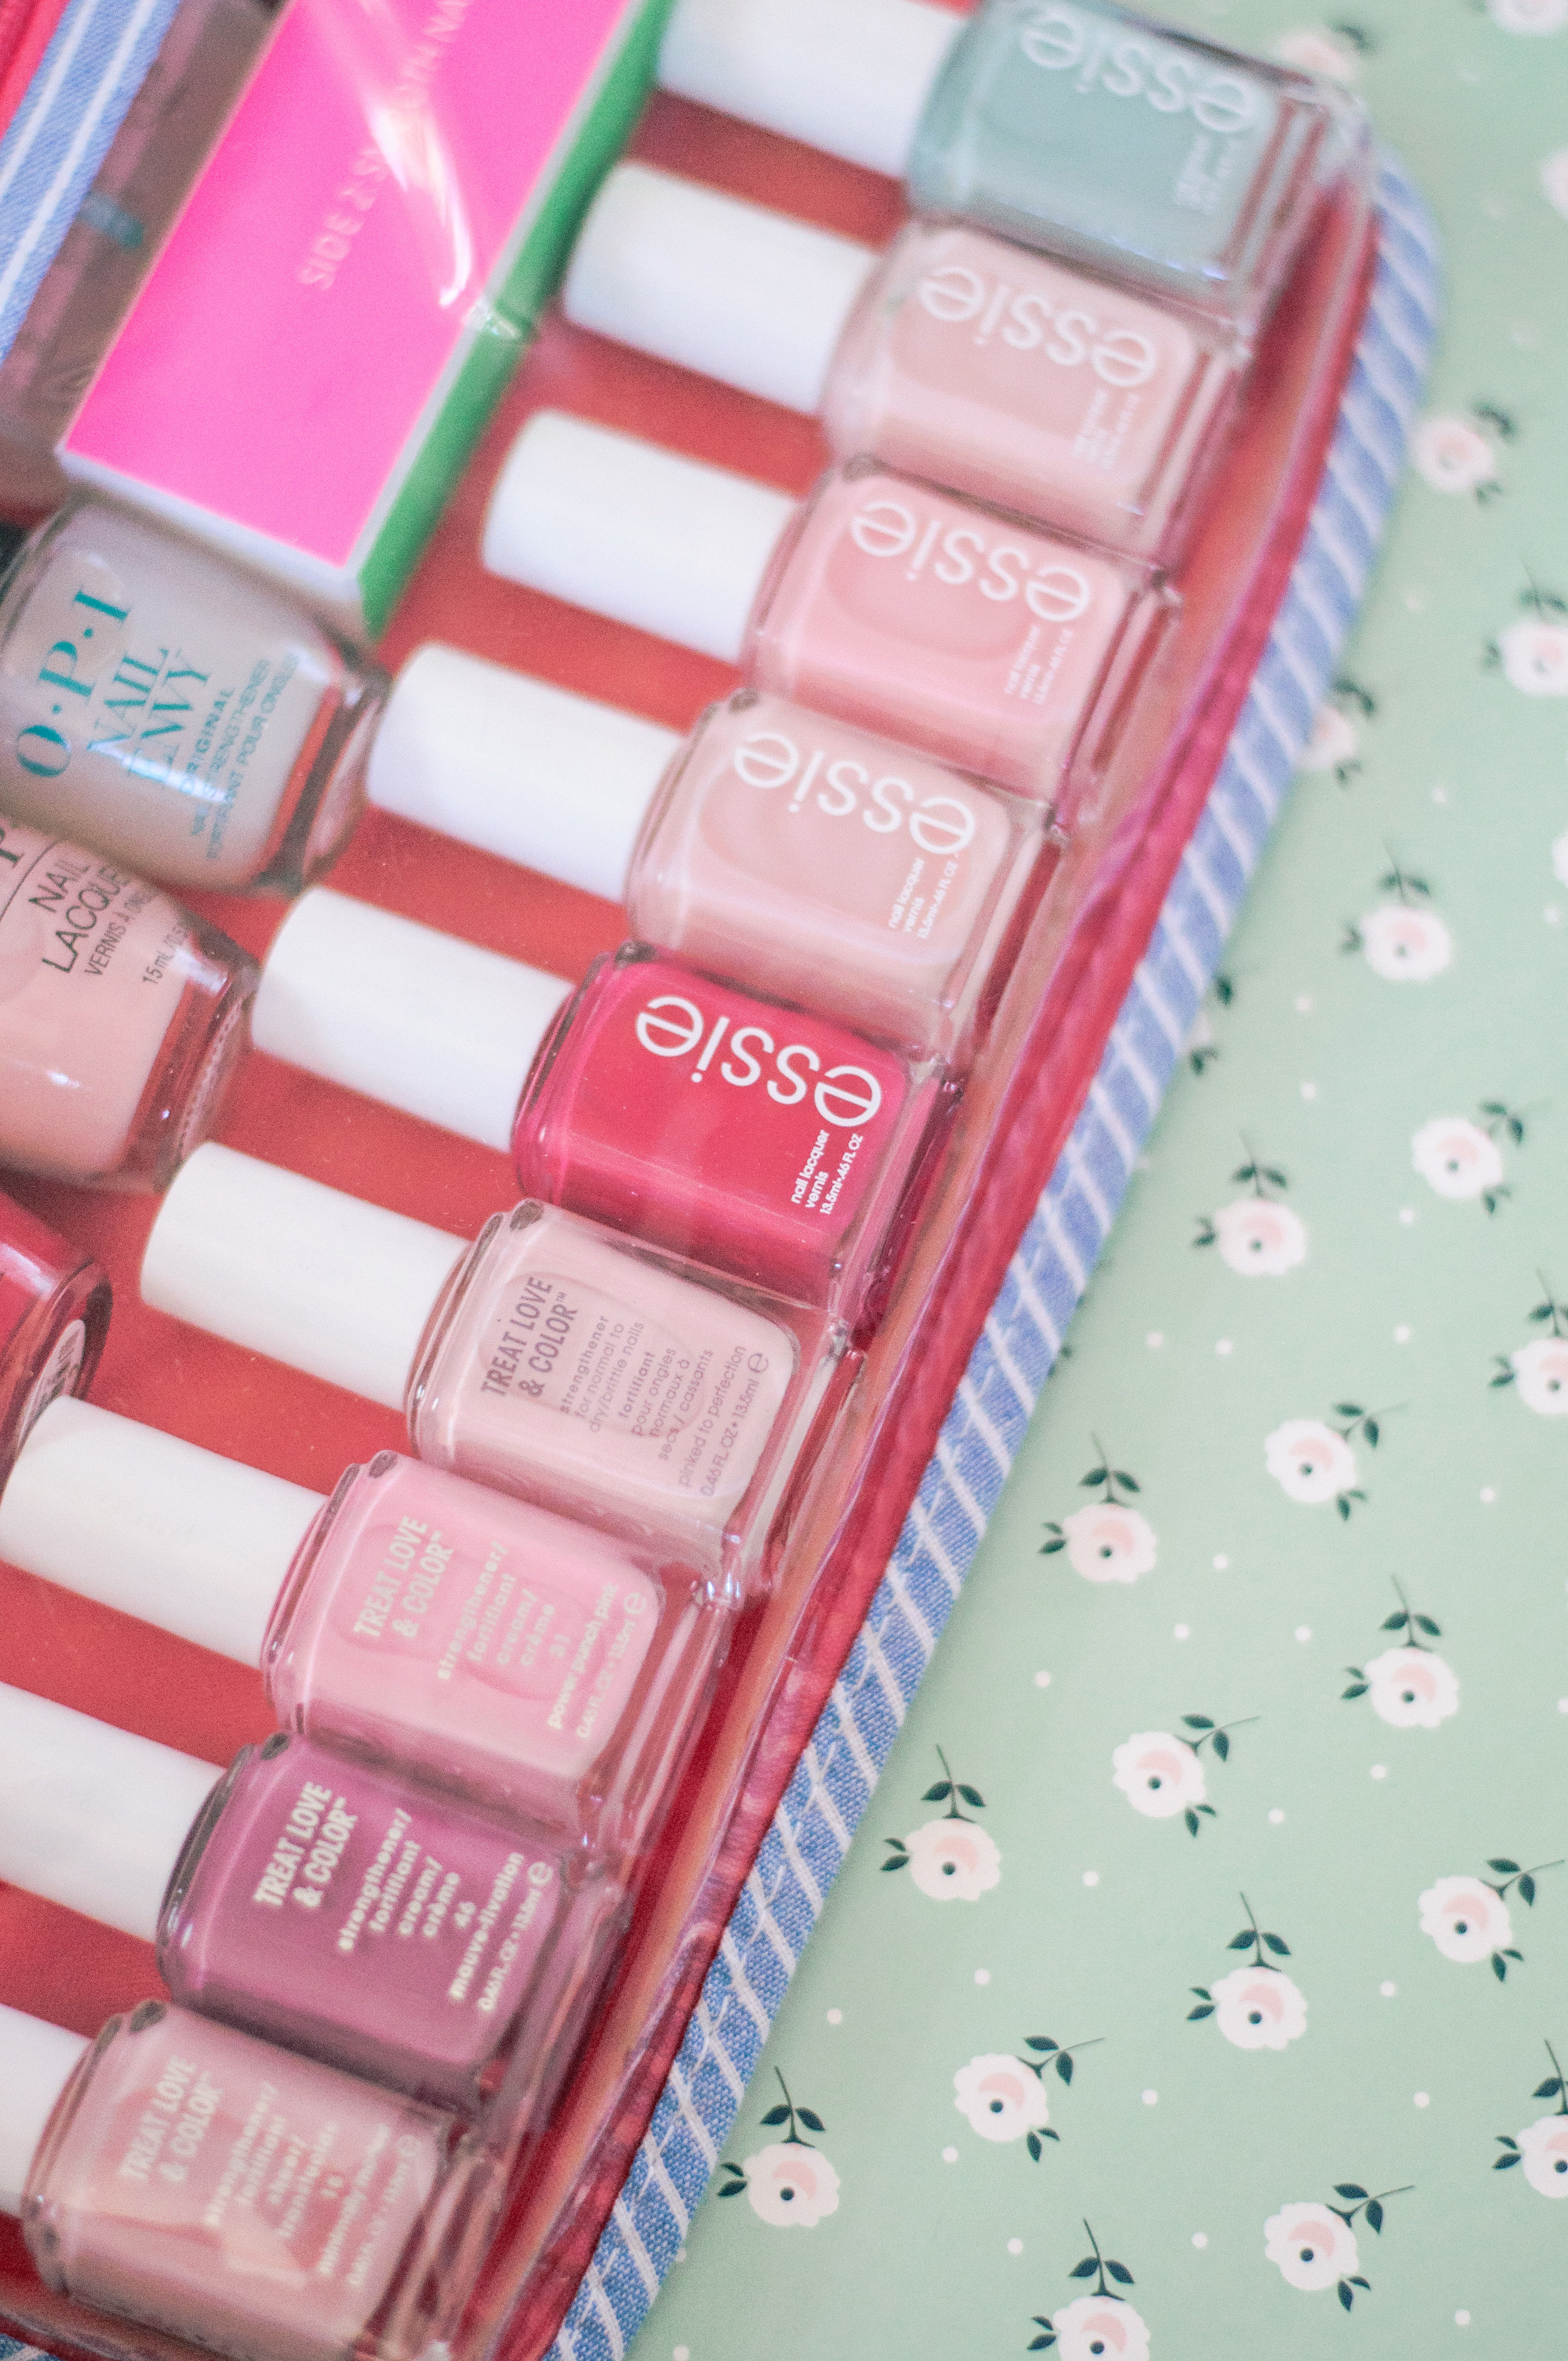 The Best Neutral Natural Nail Polish Colors